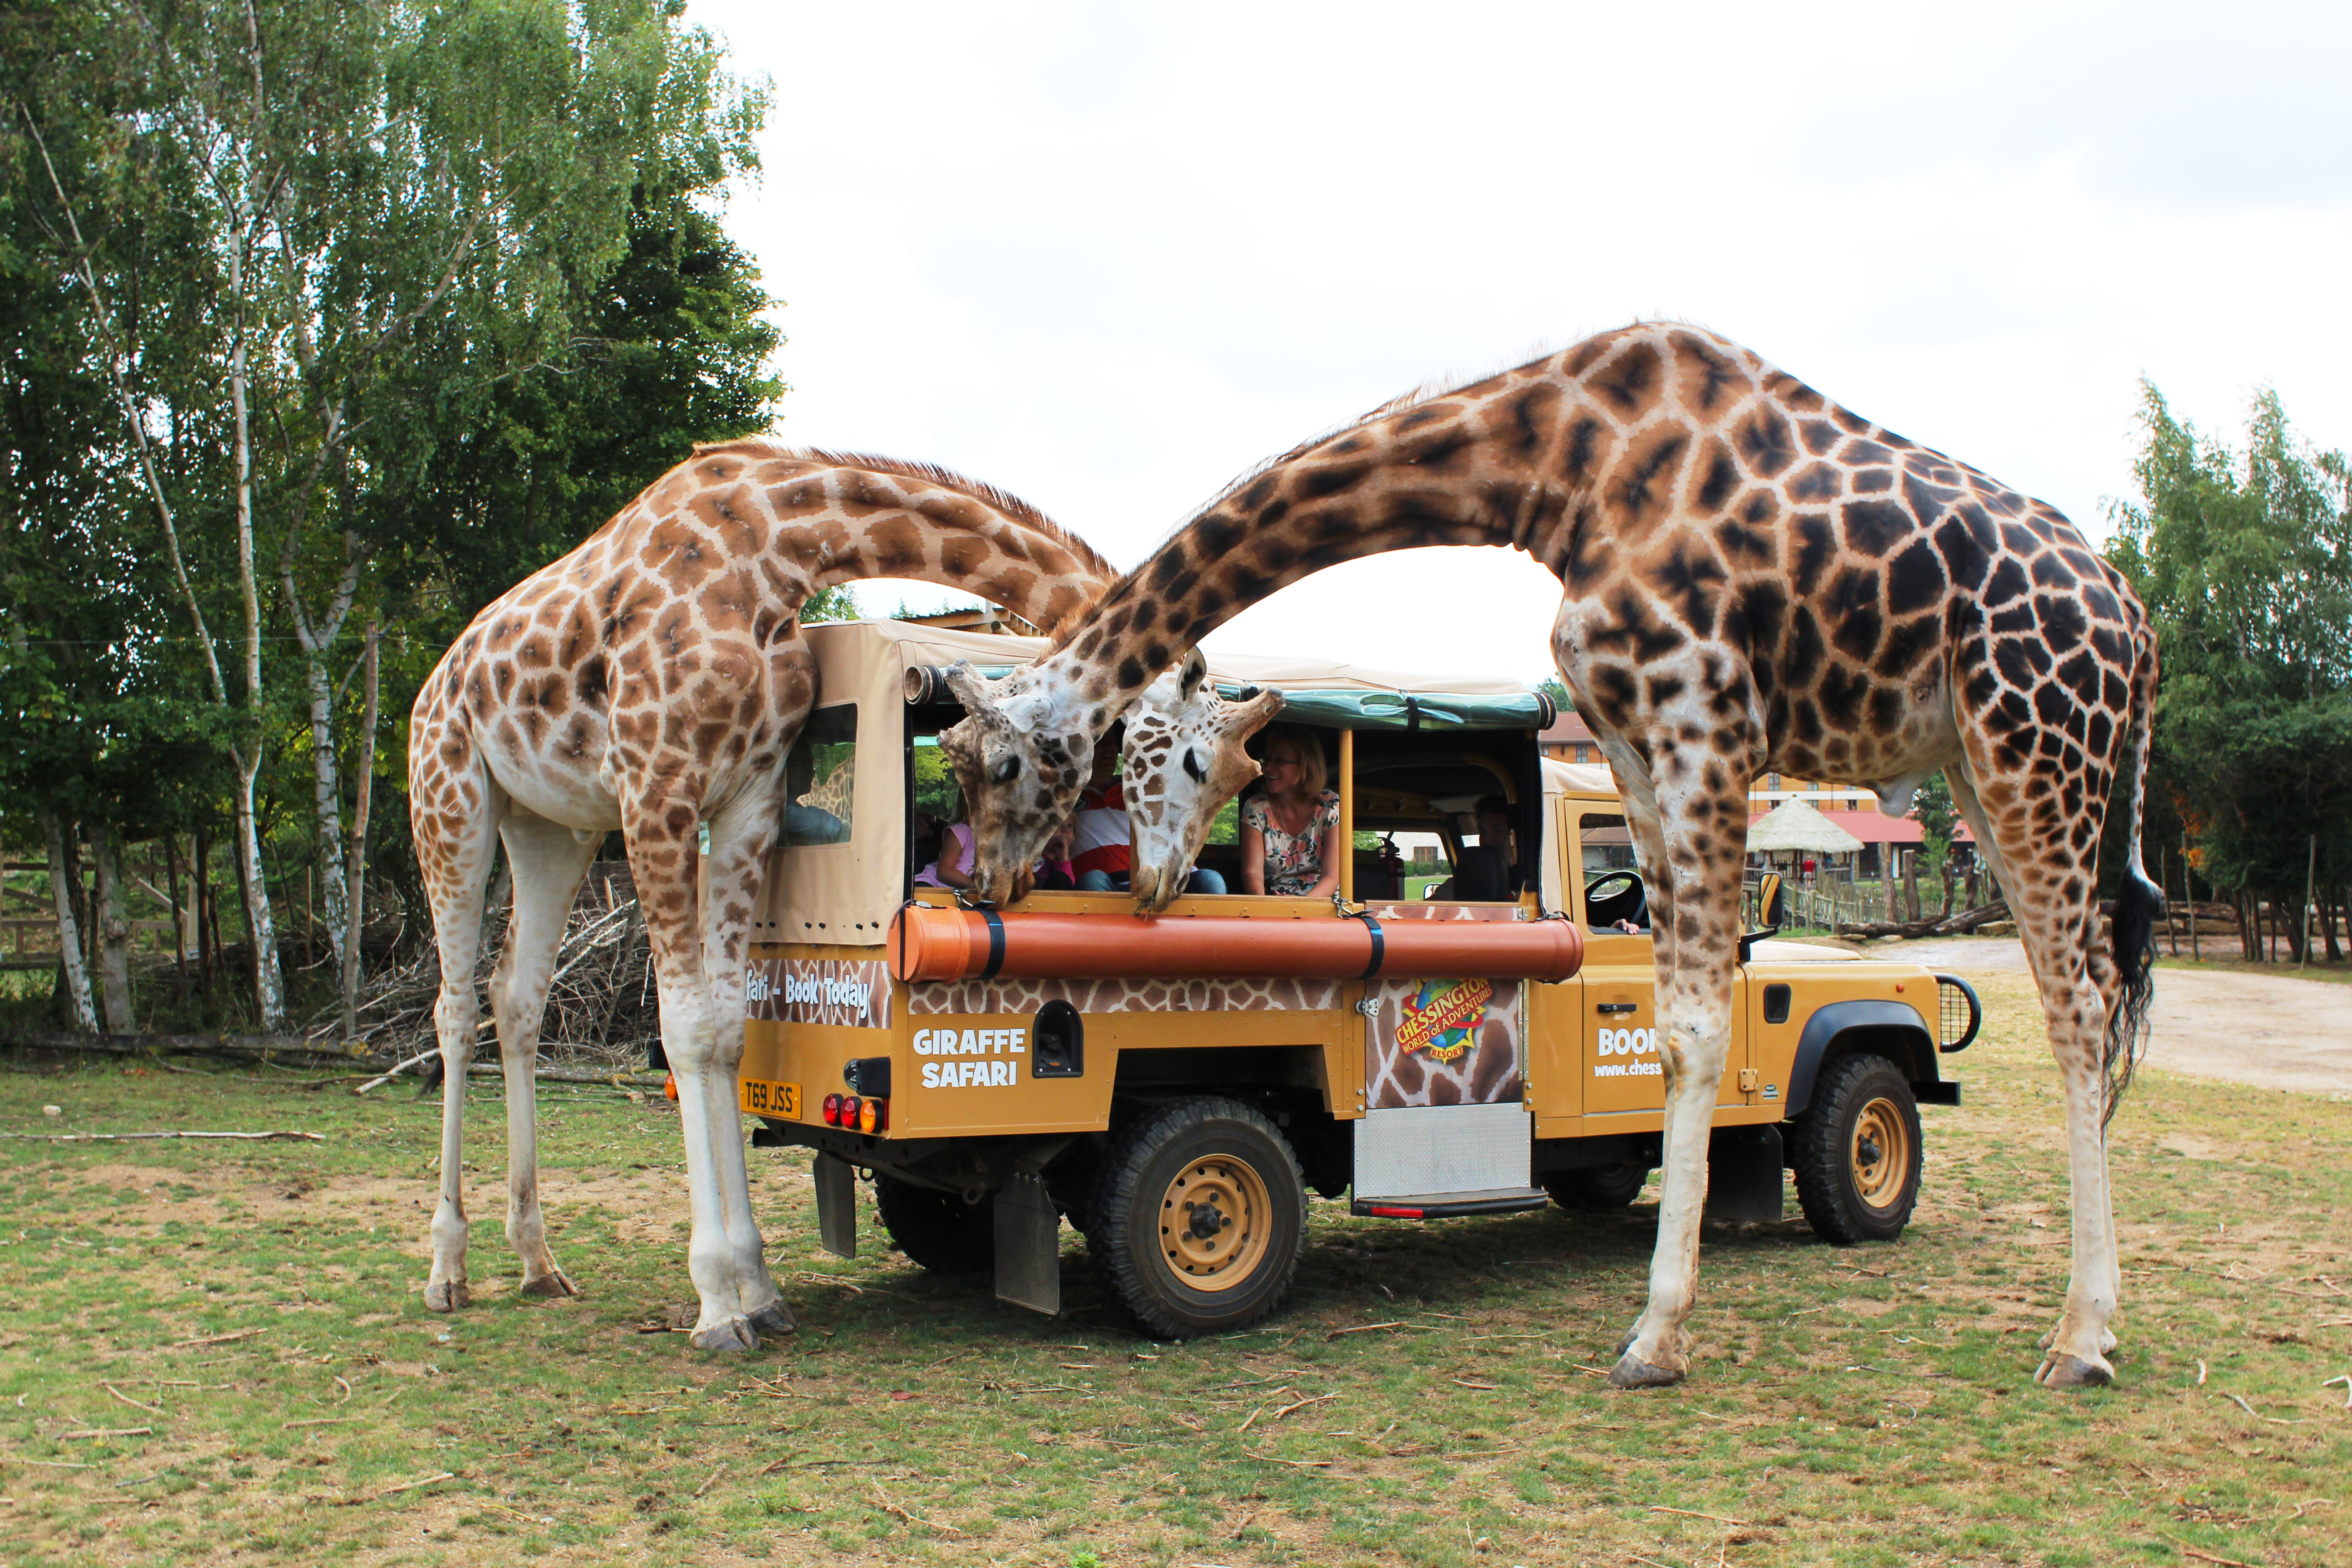 Giraffe Safari Feed